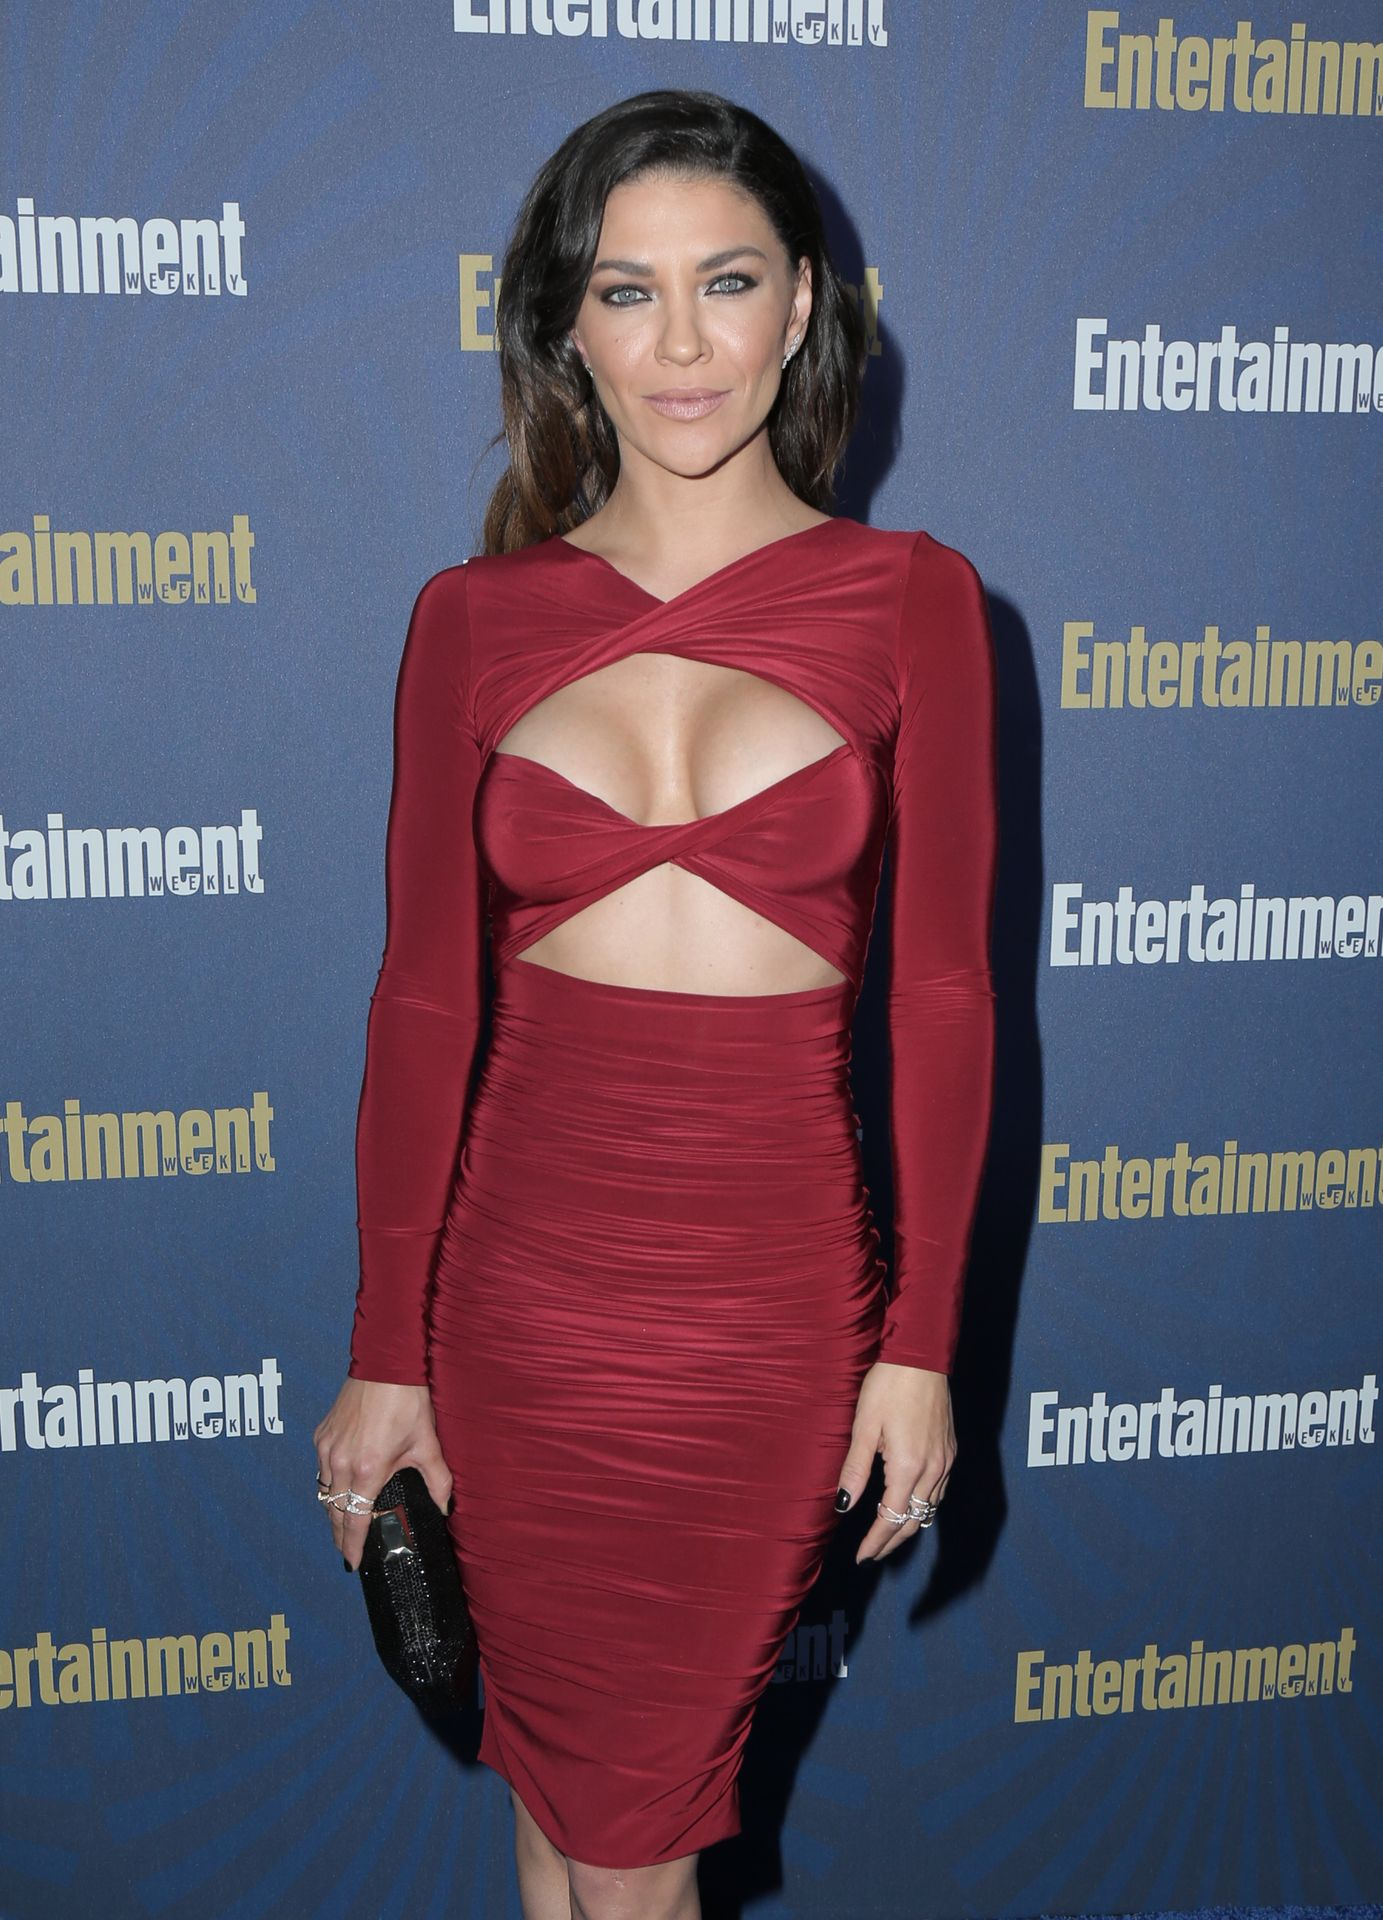 Jessica Szohr Shows Her Cleavage At The Entertainment Weekly Pre Sag Awards Celebration 0014